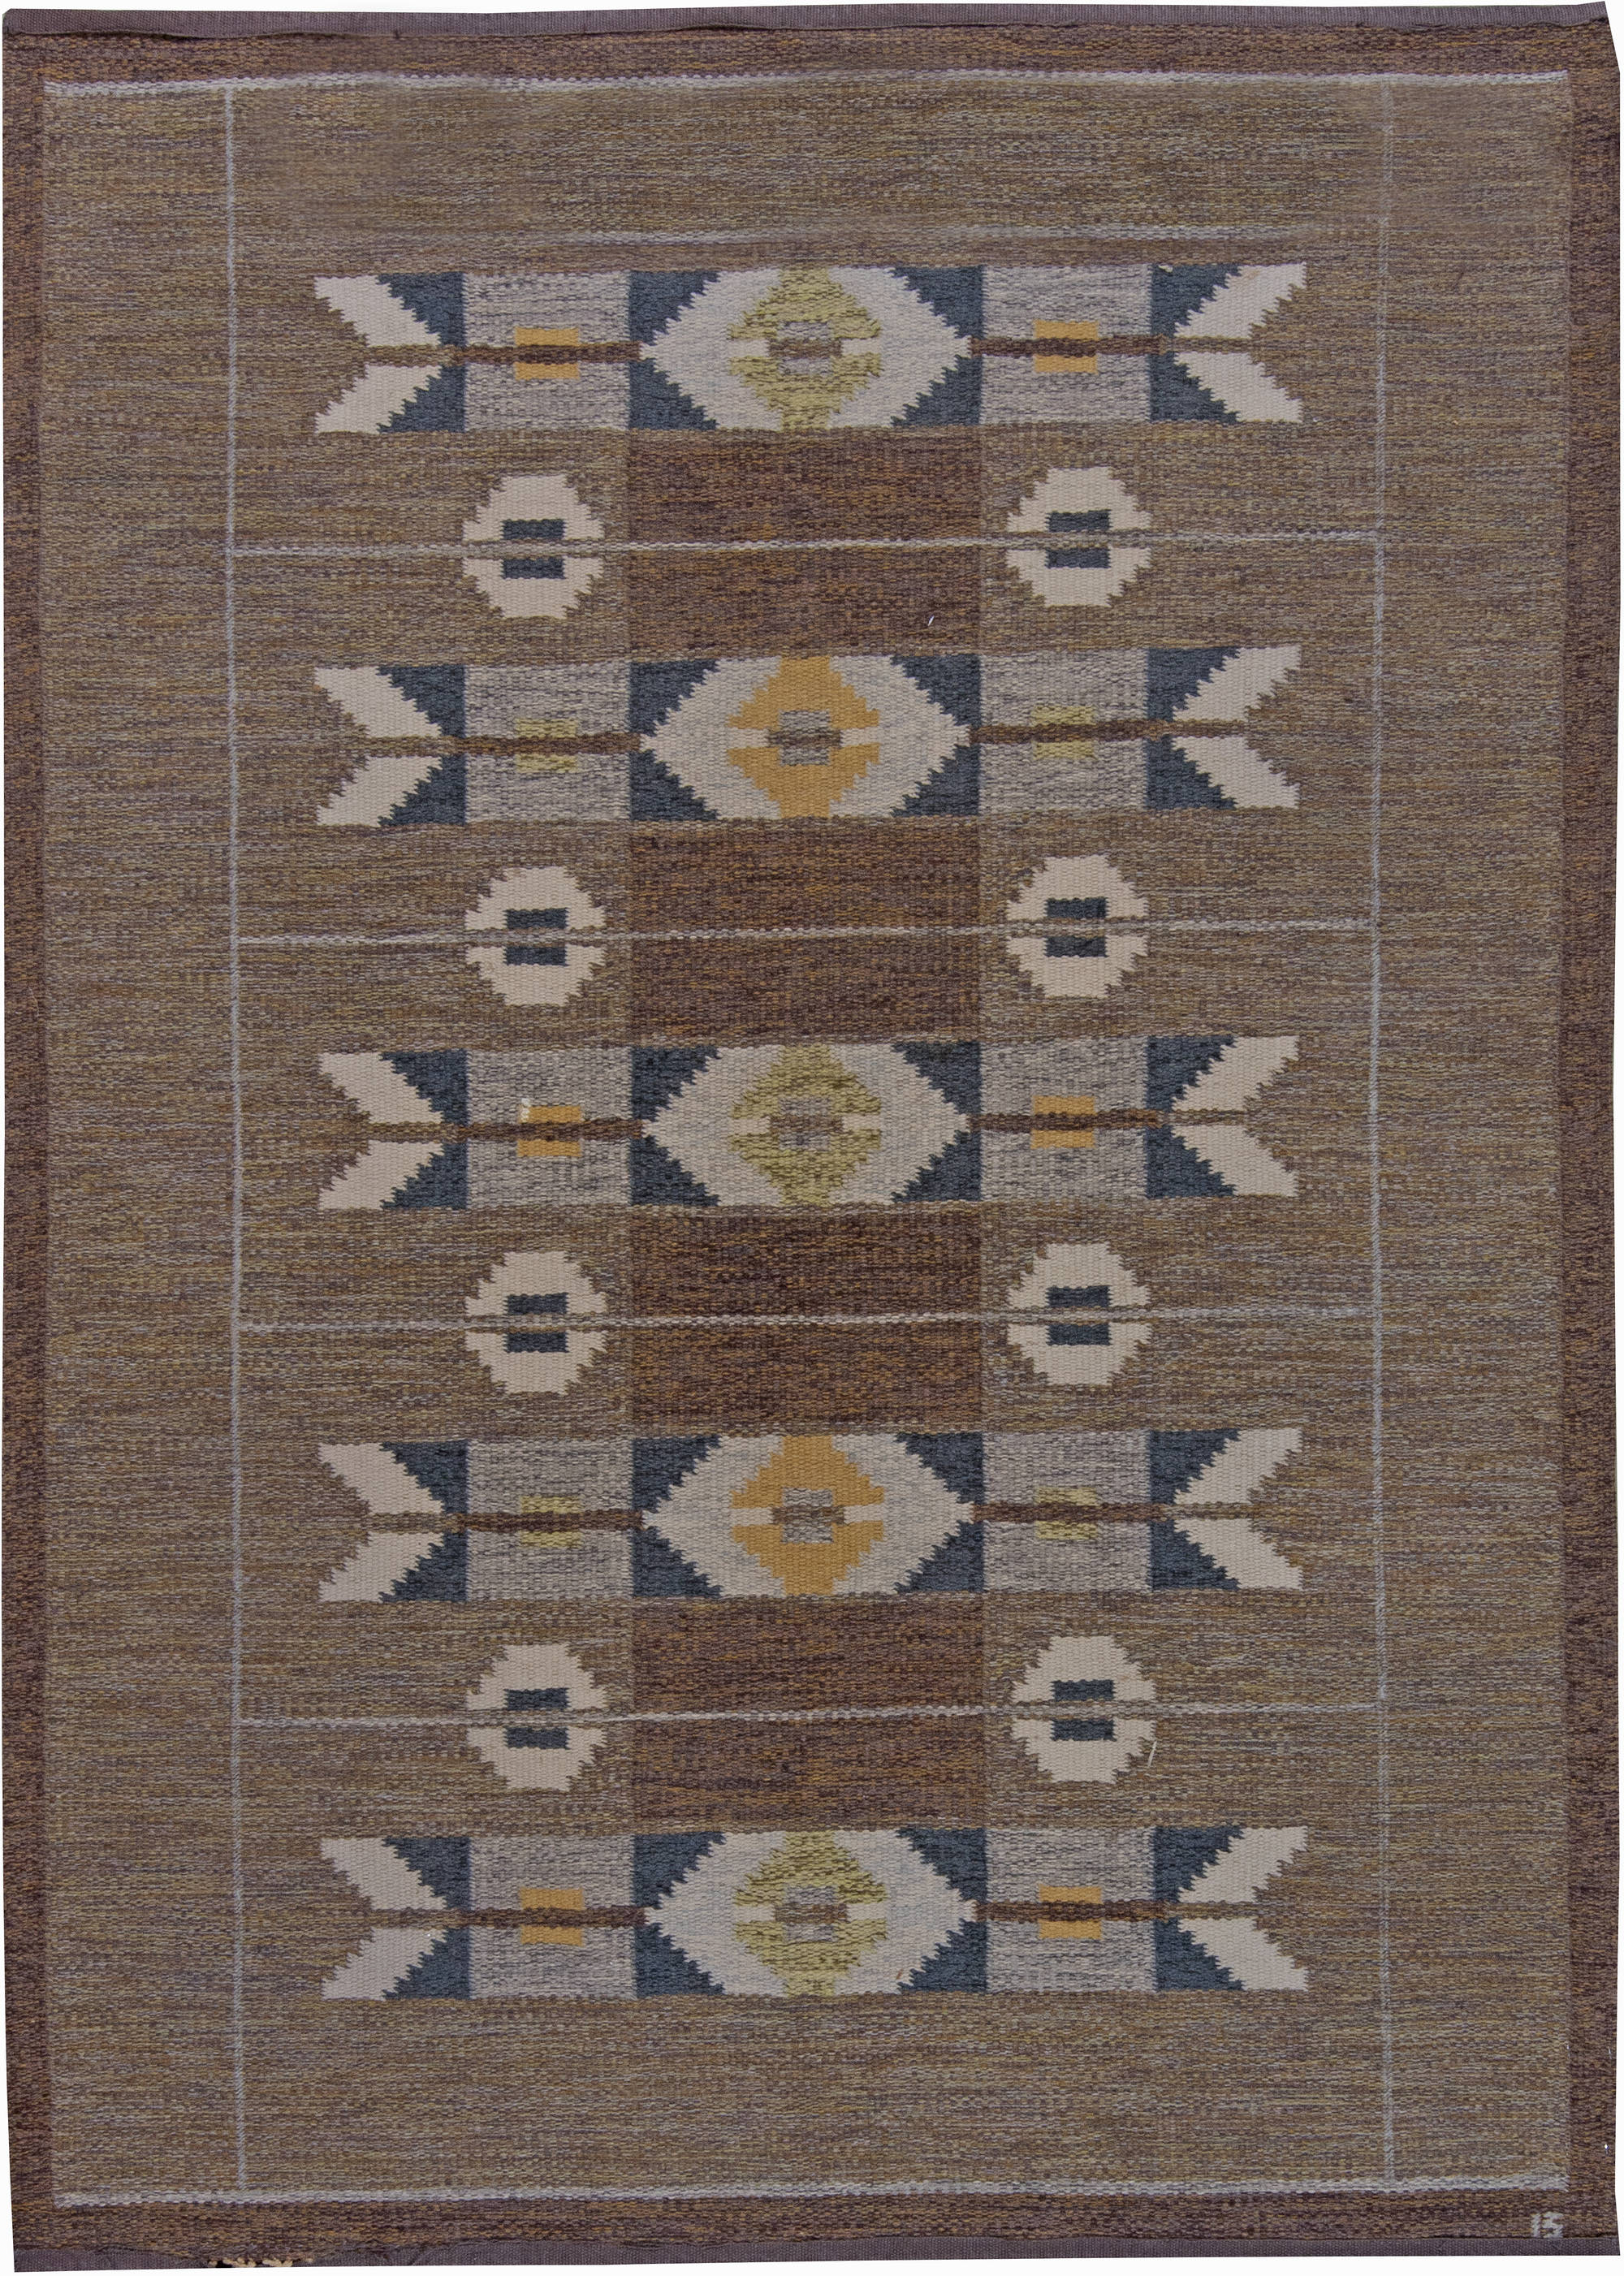 Scandinavian Rugs From New York Gallery Doris Leslie Blau